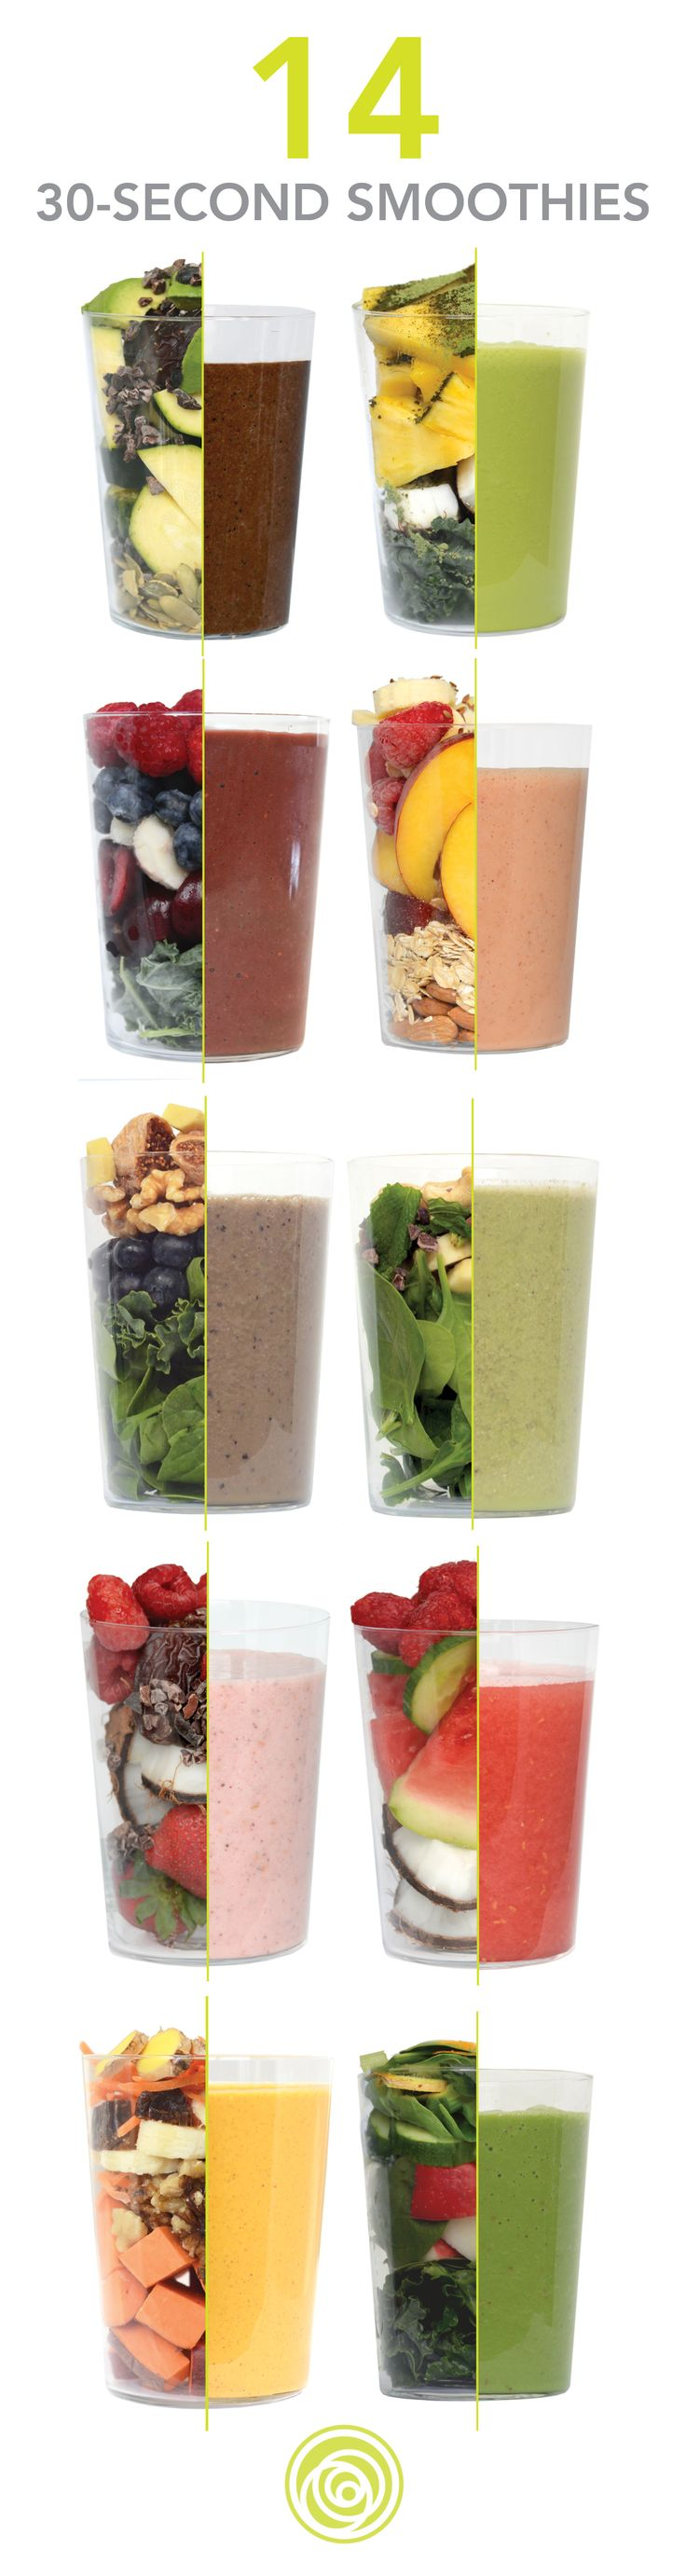 Ready-to-blend frozen smoothies delivered to your door. 14 flavors or raw, whole, real ingredients and superfoods. Just open, blend and enjoy. No prepping, no mess, no leftovers.  Get 2 FREE blends with your first box!